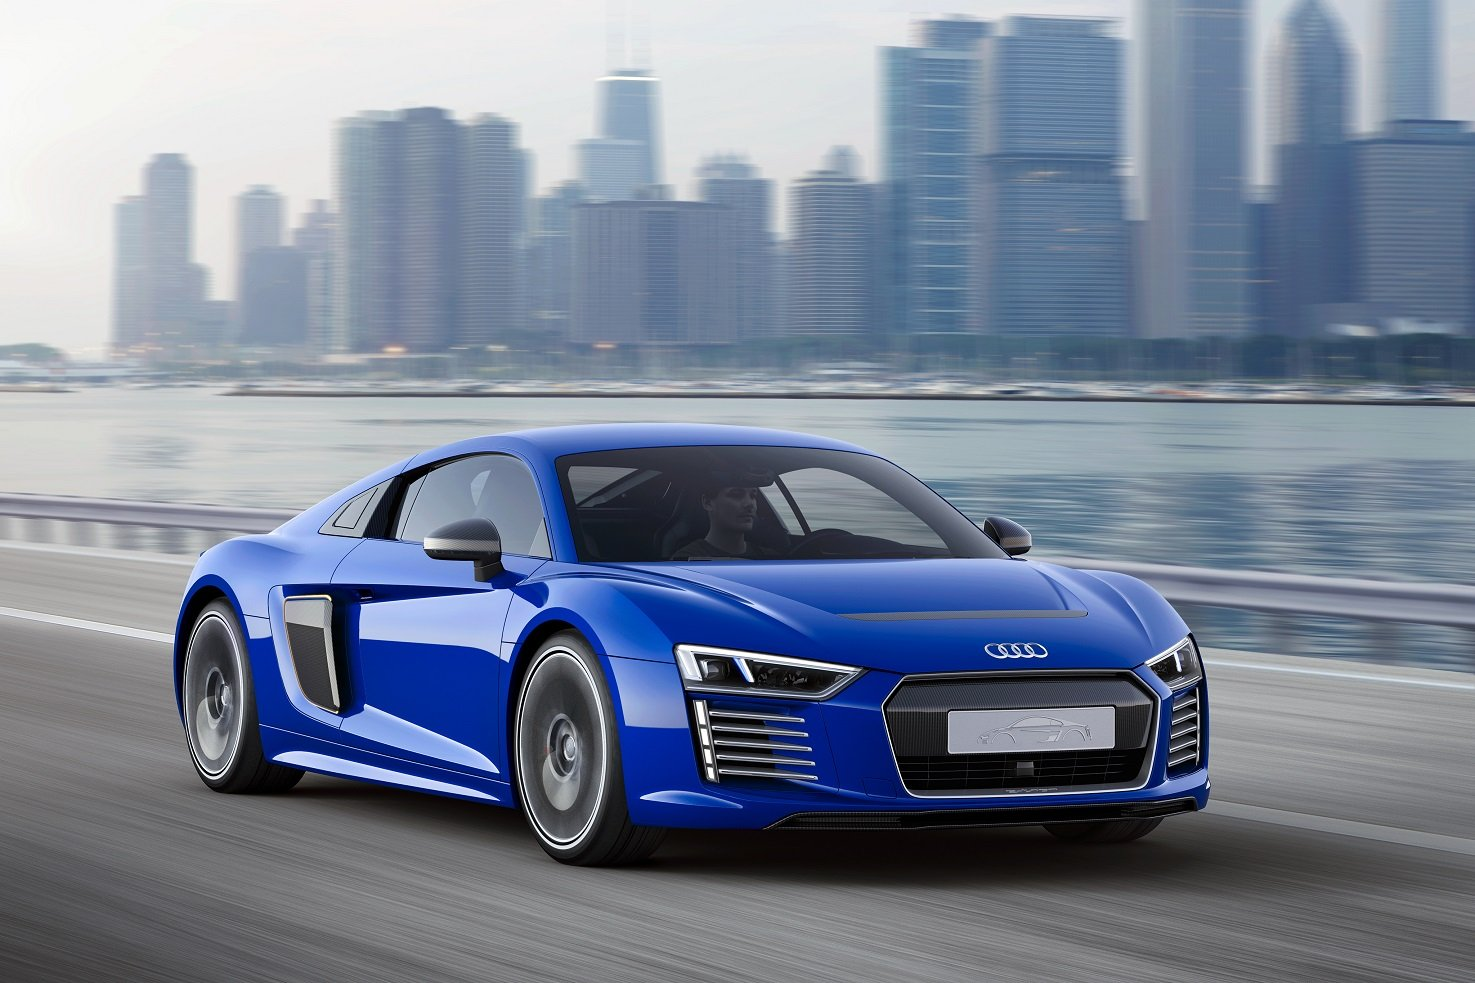 Marvelous Audi R8 E Tron Piloted Driving Concept 2015 Cars Coupe Blue Wallpaper |  1475x983 | 697468 | WallpaperUP